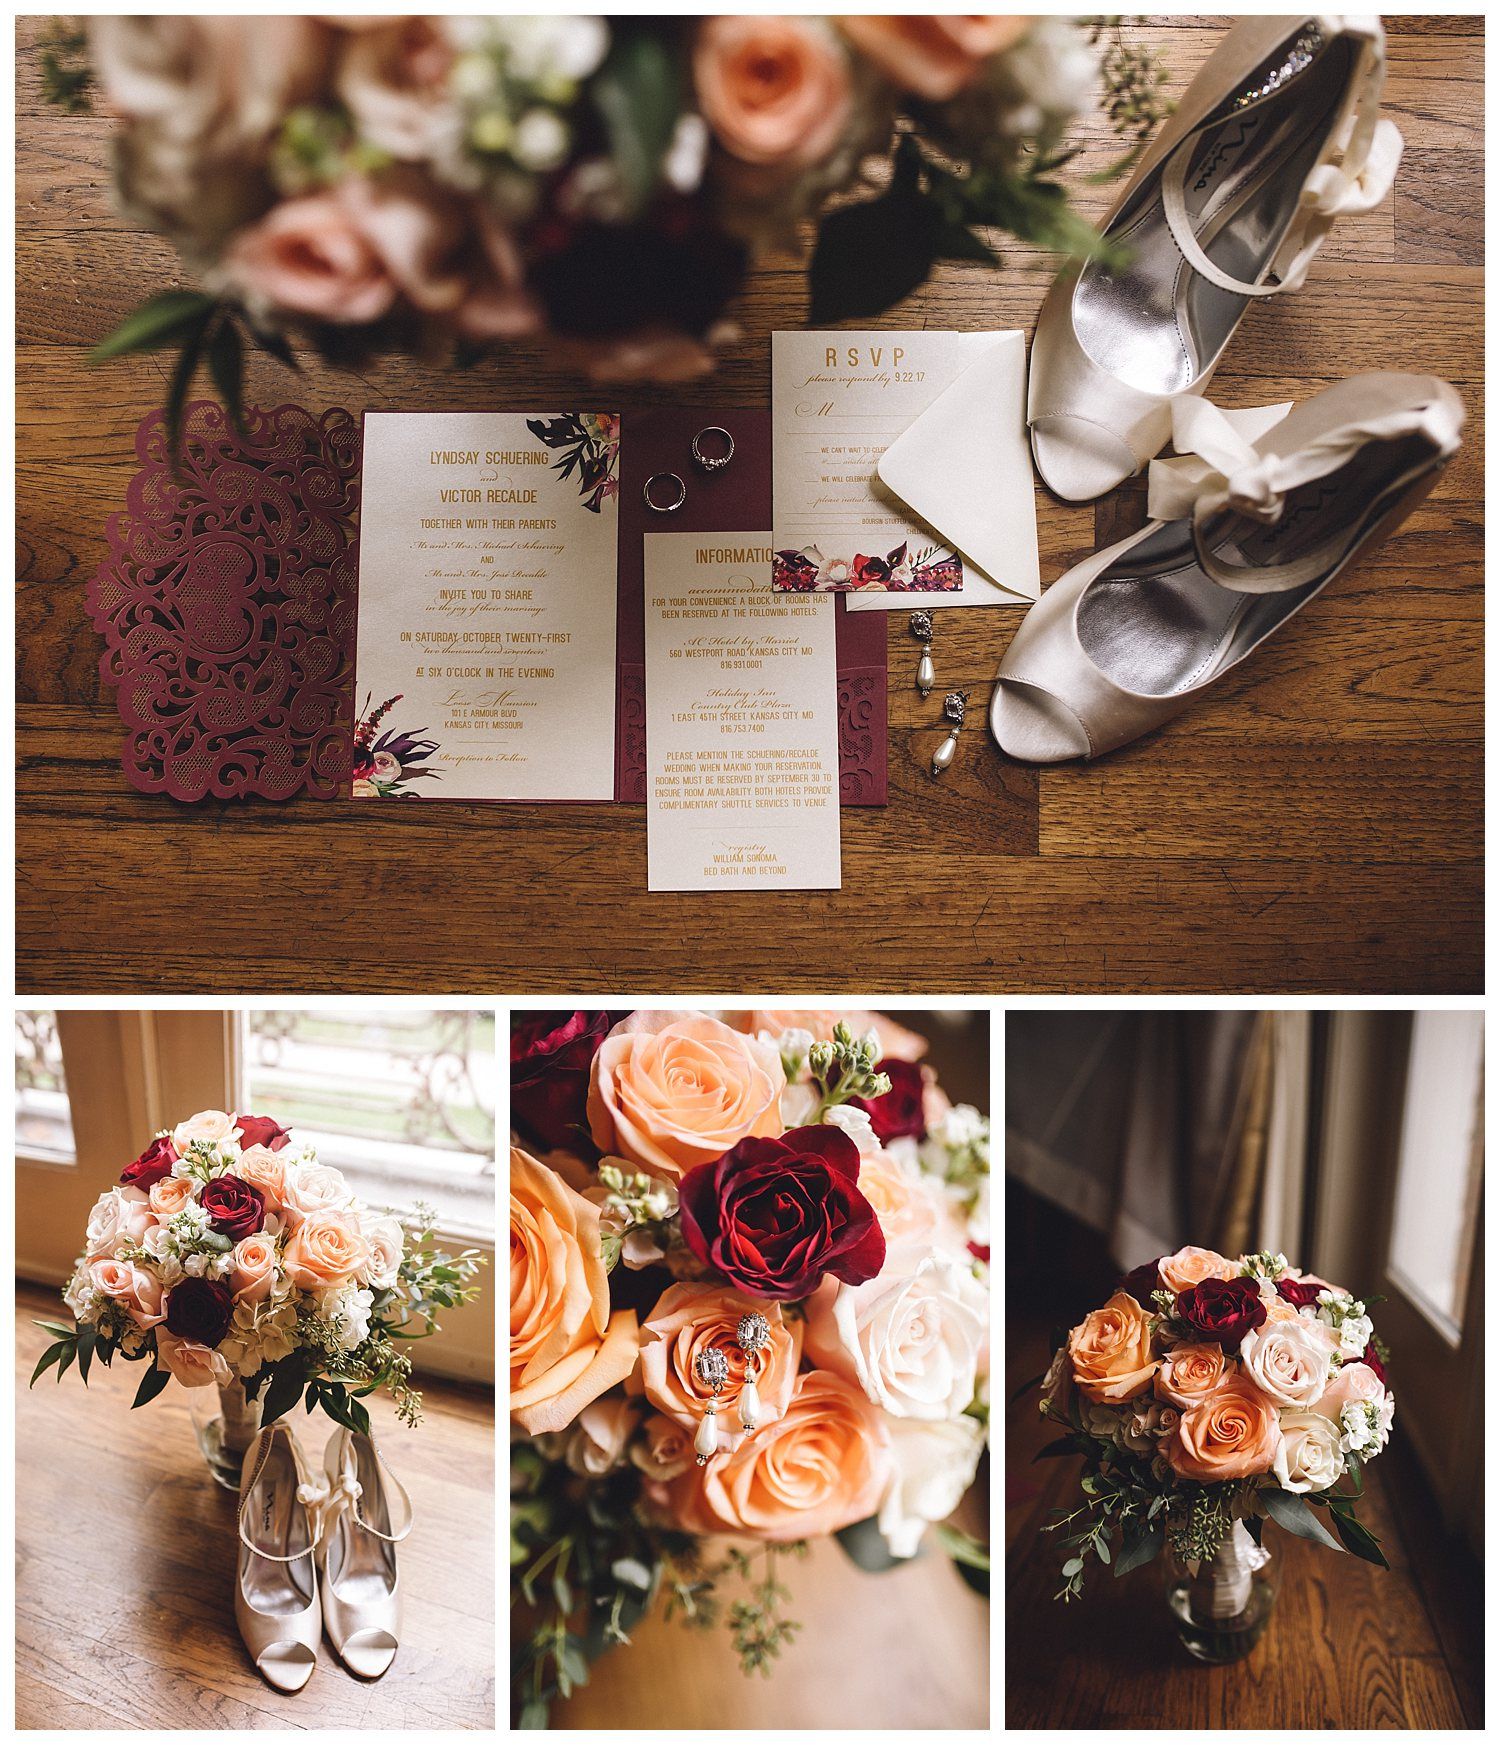 Kelsey_Diane_Photography_Loose_Mansion_Wedding_Photography_Kansas_City_Victor_Lyndsay_0108.jpg